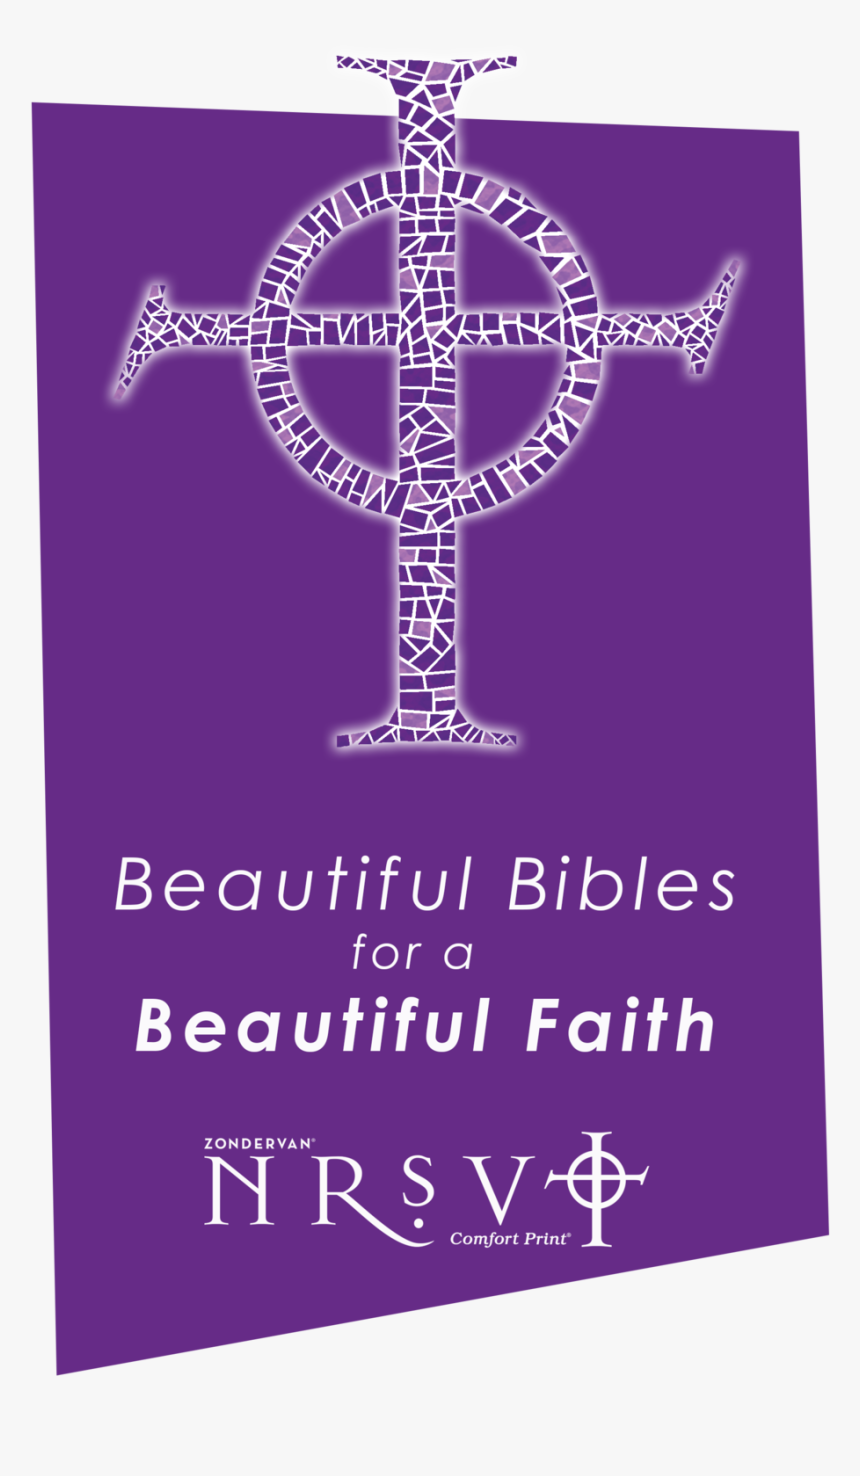 Why Christian Vertical Christian New Years Divider - Cross, HD Png Download, Free Download